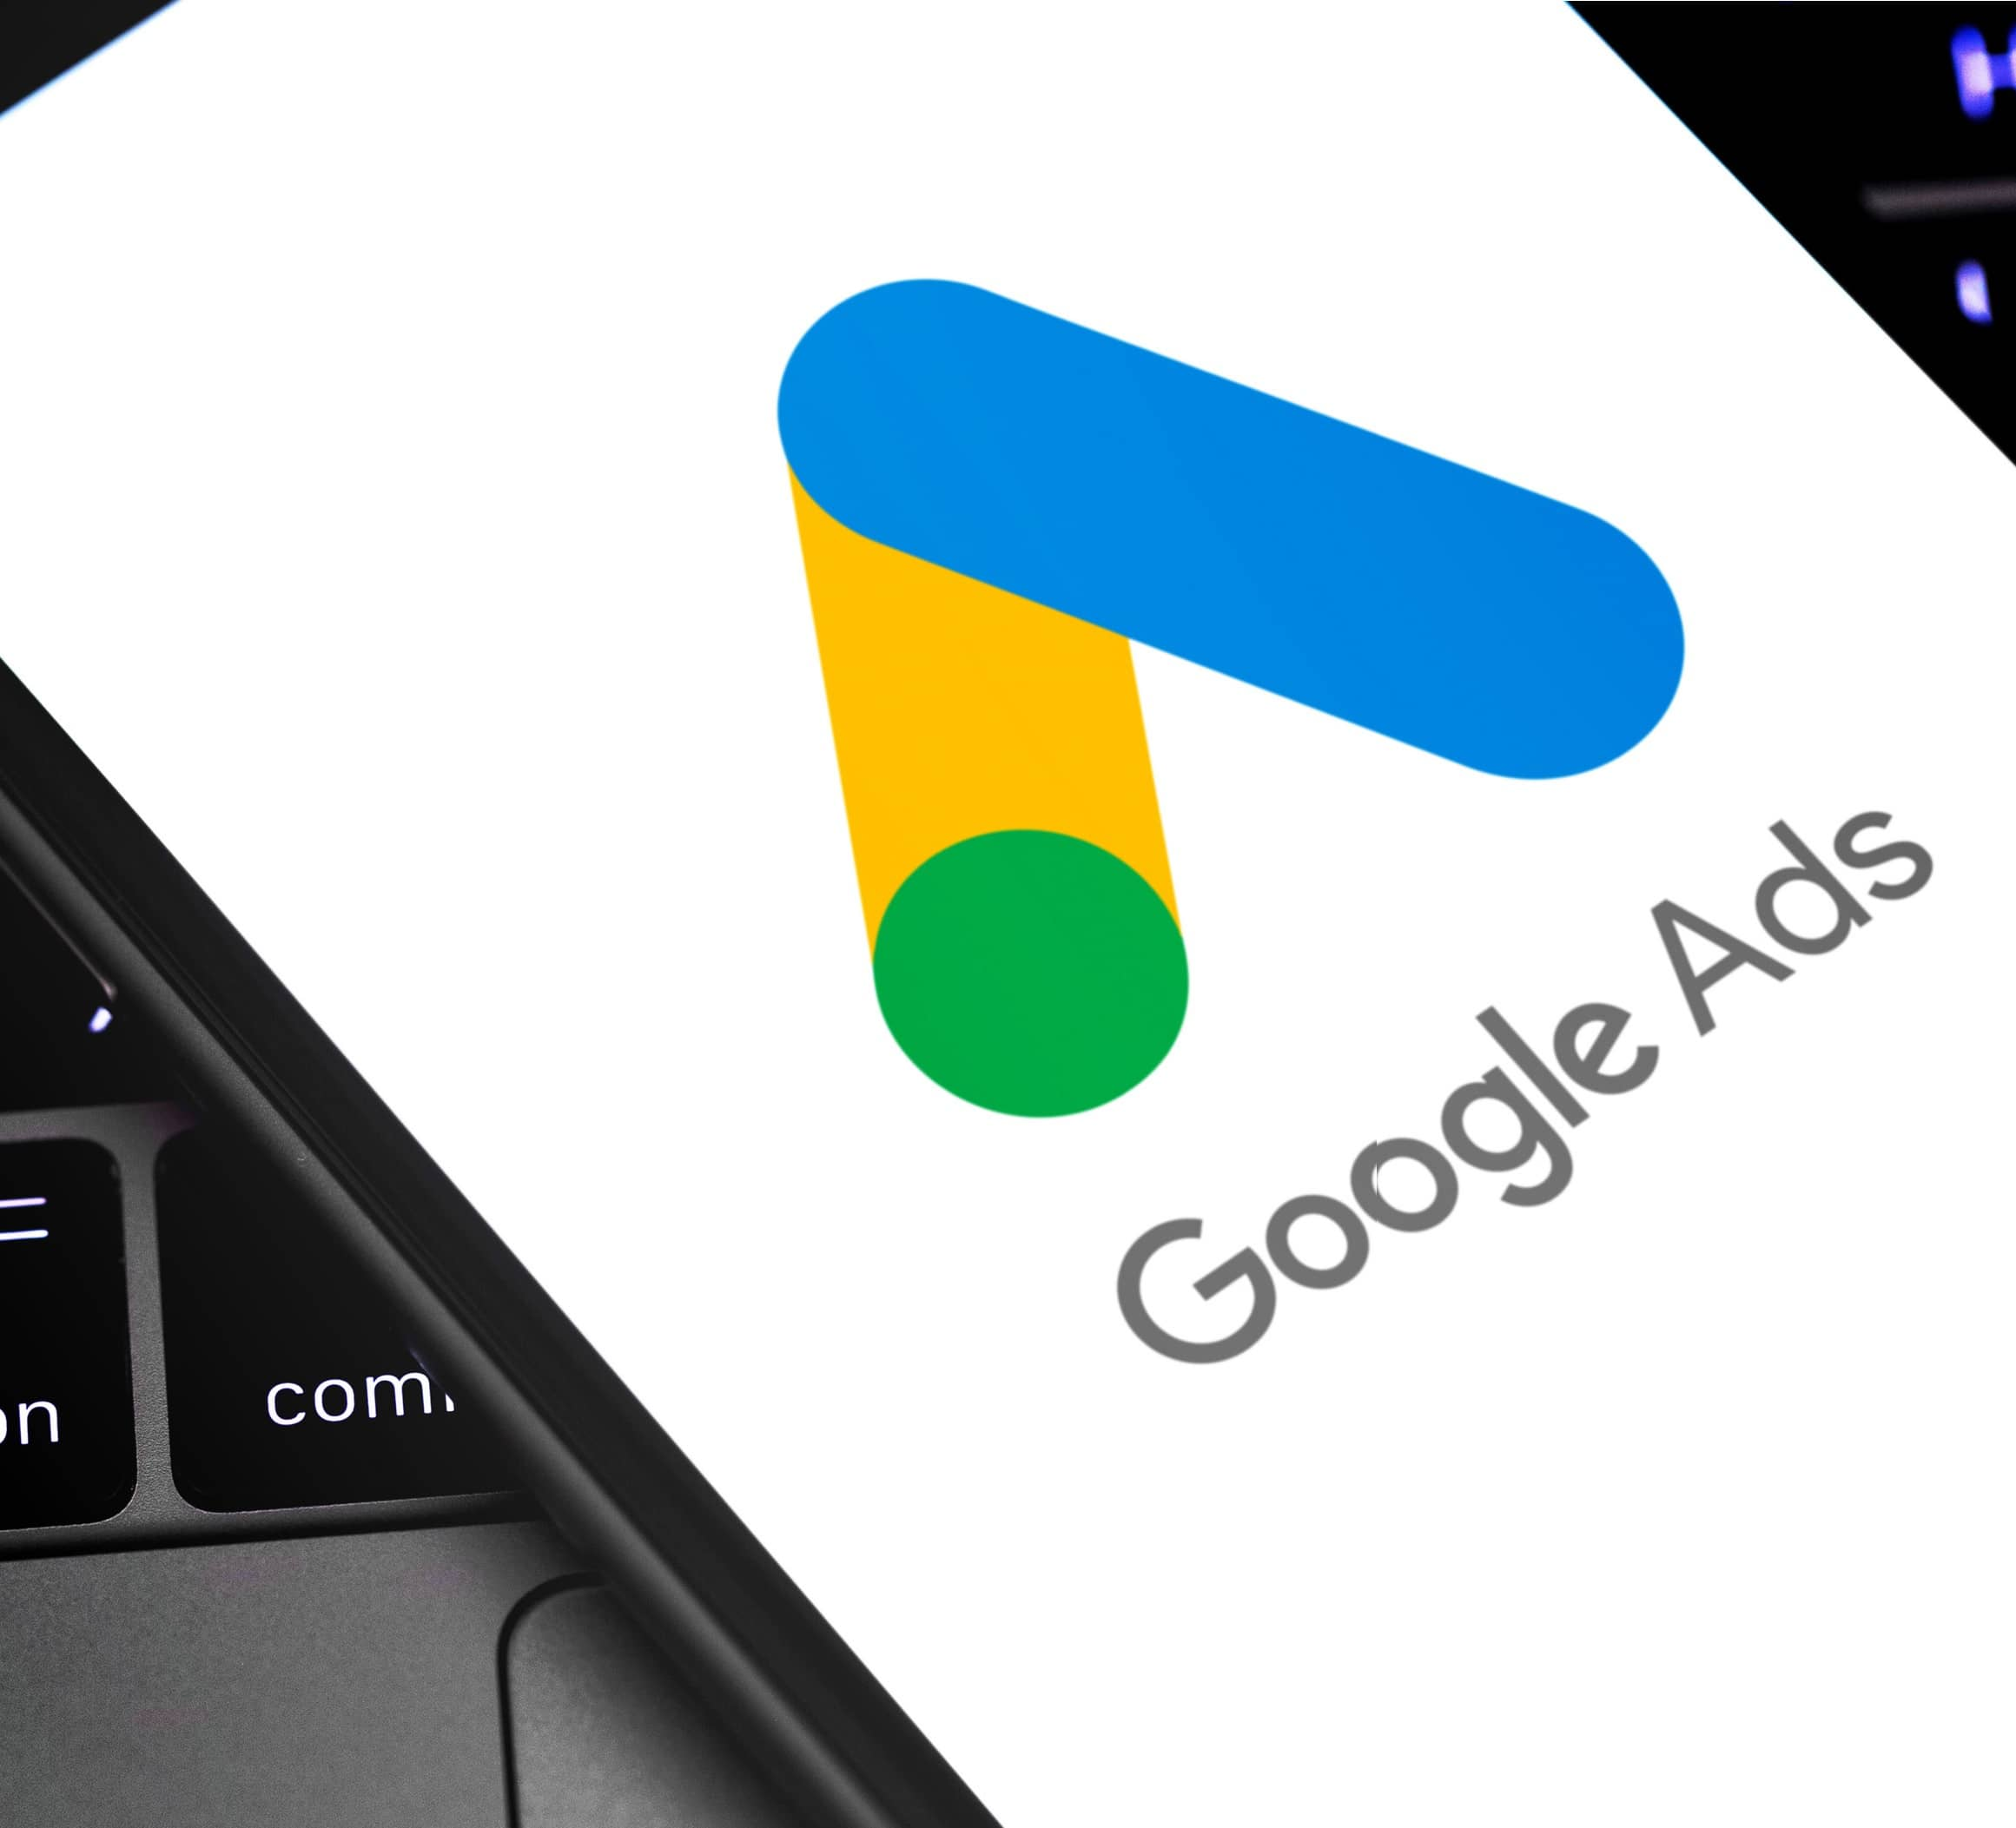 Google Ads: Effective, A Little Frustrating, Businesses Say